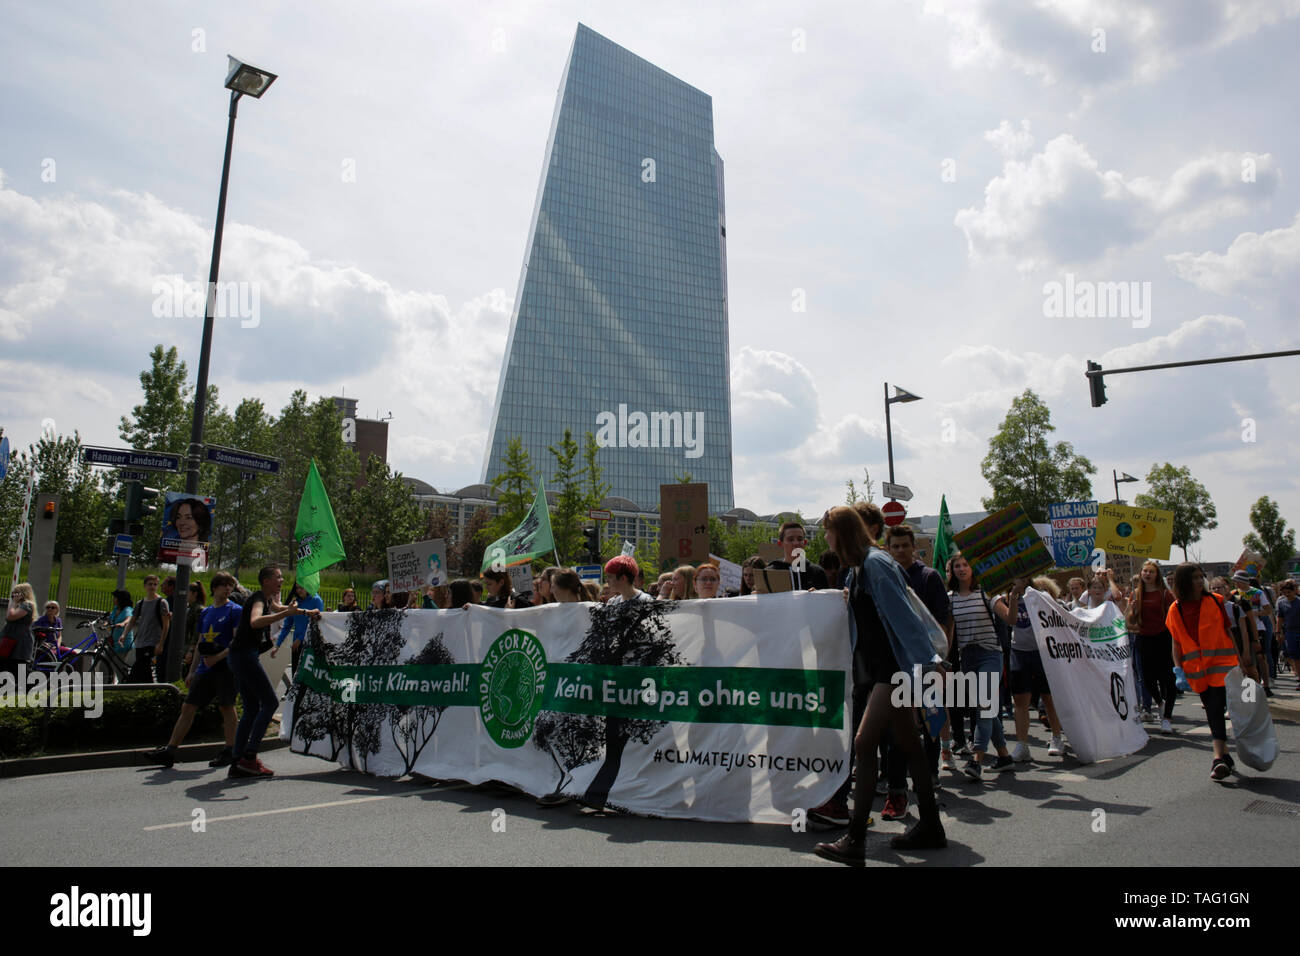 The protesters march with self-made signs past the ECB (European Central Bank) building. Around 4,500 young people marched through Frankfurt to the European Central Bank, to protest against the climate change and for the introduction of measurements against it. The protest took place as part of an Europe wide climate strike, two days ahead of the 2019 European elections. (Photo by Michael Debets/Pacific Press - Stock Image